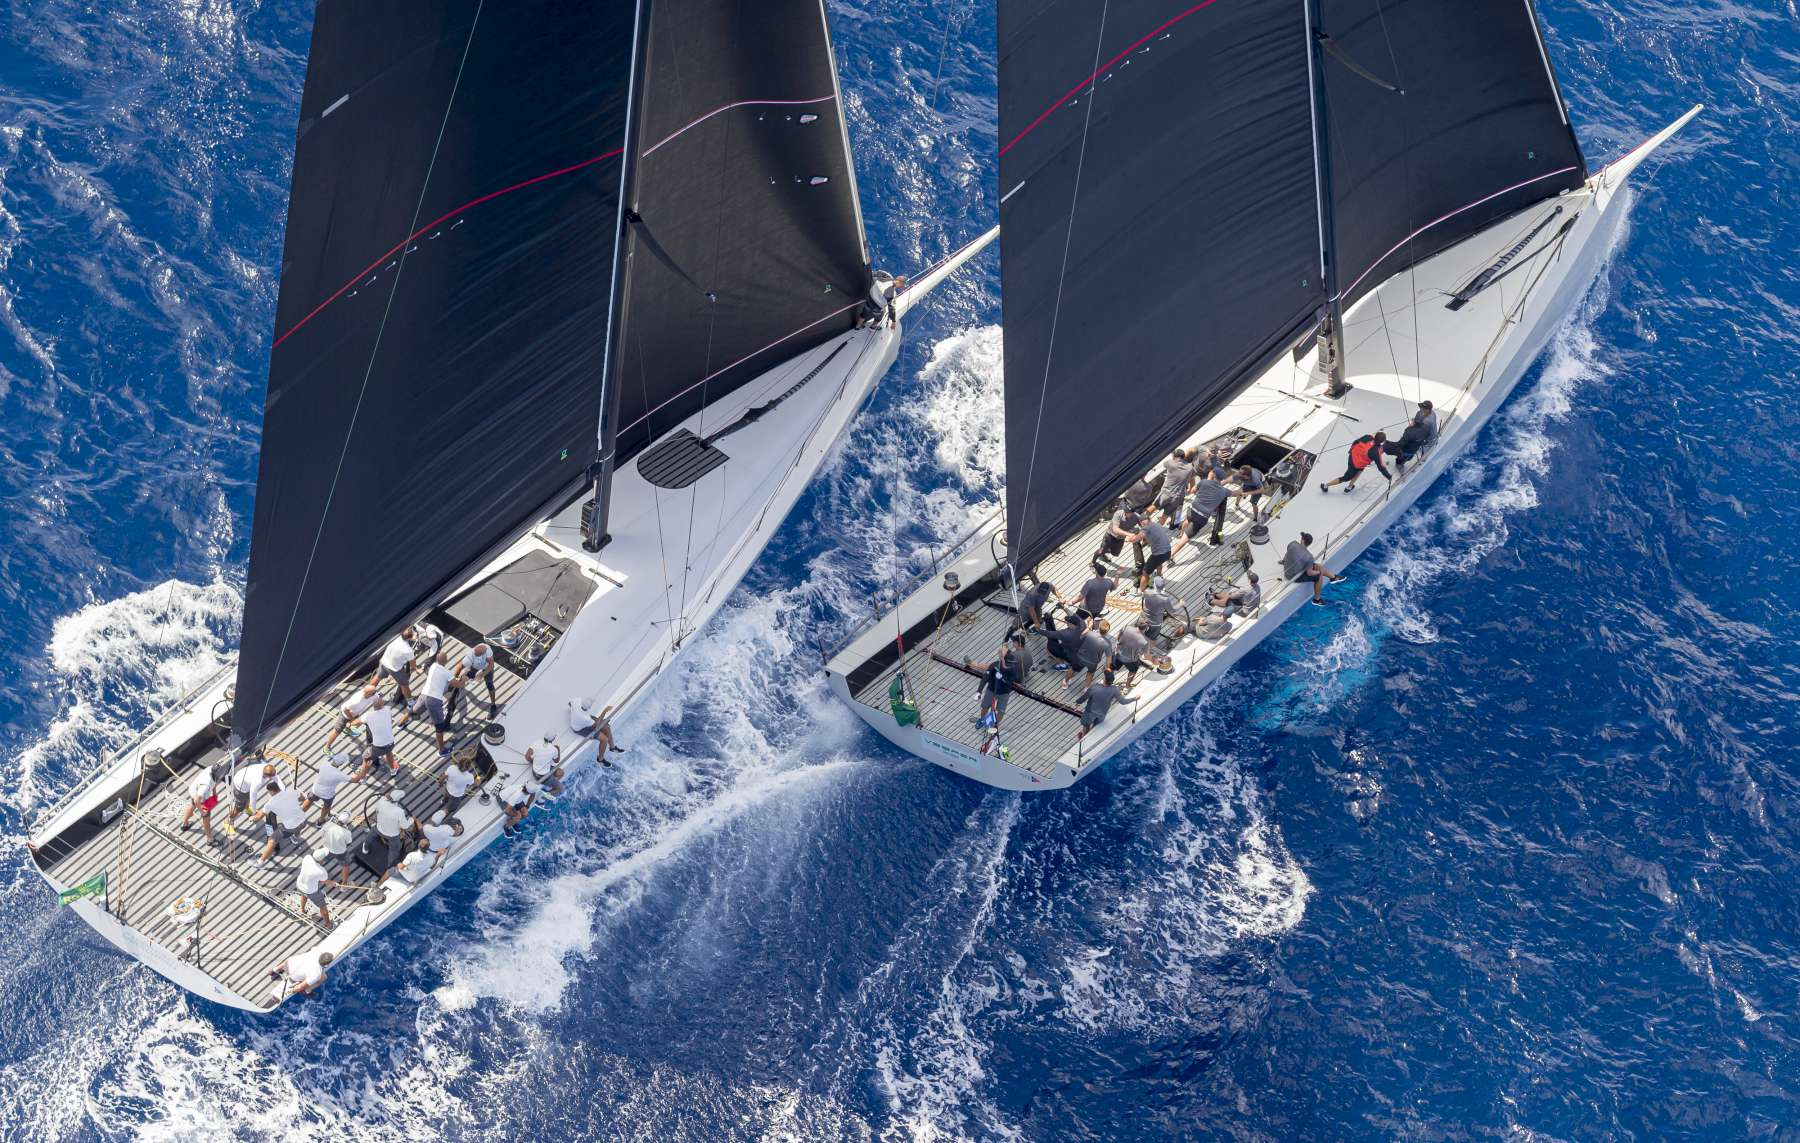 30th edition of the Maxi Yacht Rolex Cup concludes in Porto Cervo - NEWS - Yacht Club Costa Smeralda